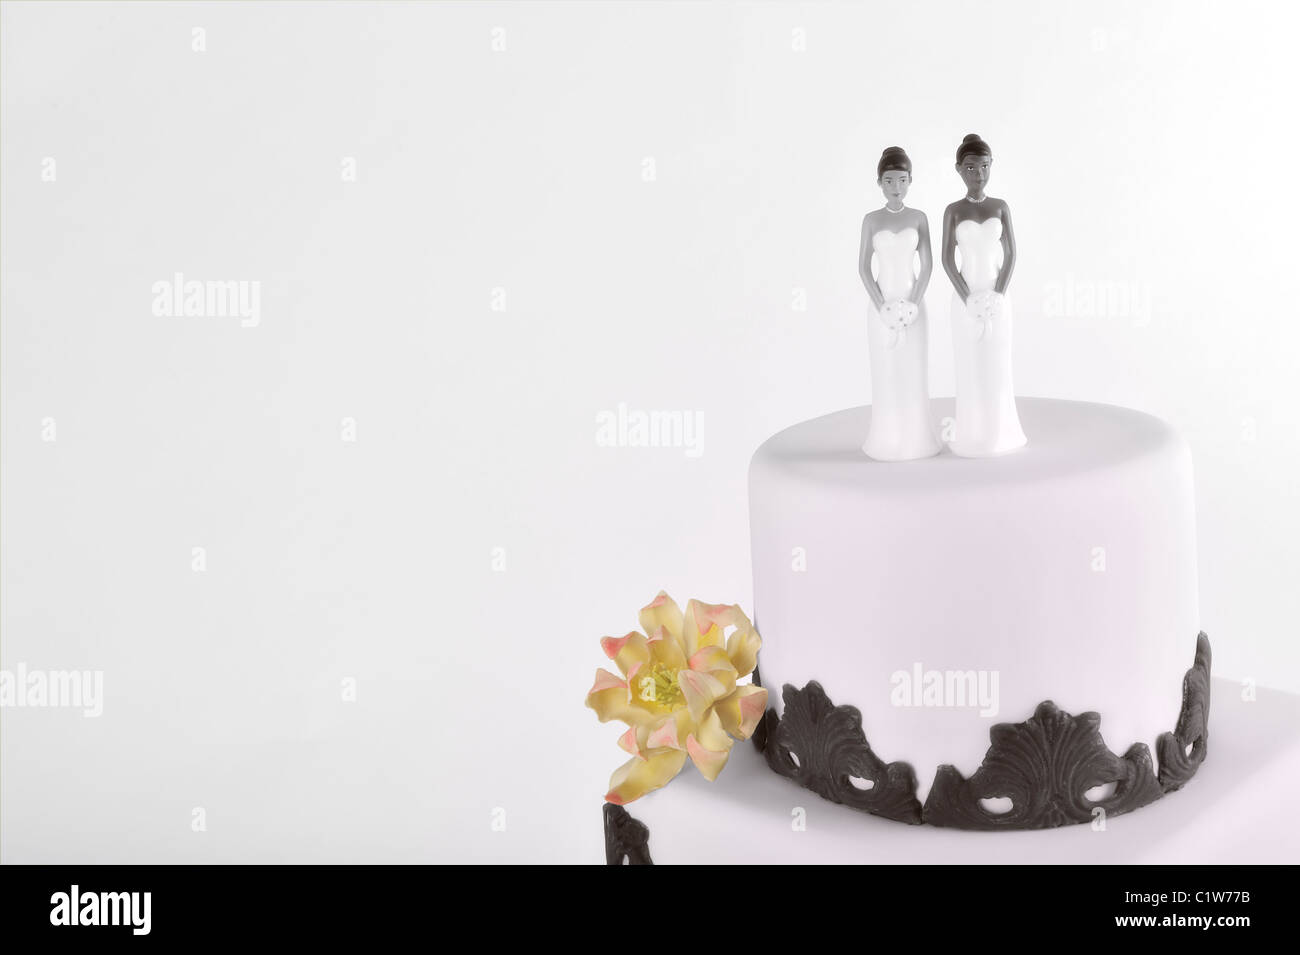 wedding-cake-decorated-two-brides-isolated-on-white-same-sex-interracial-C1W77B.jpg